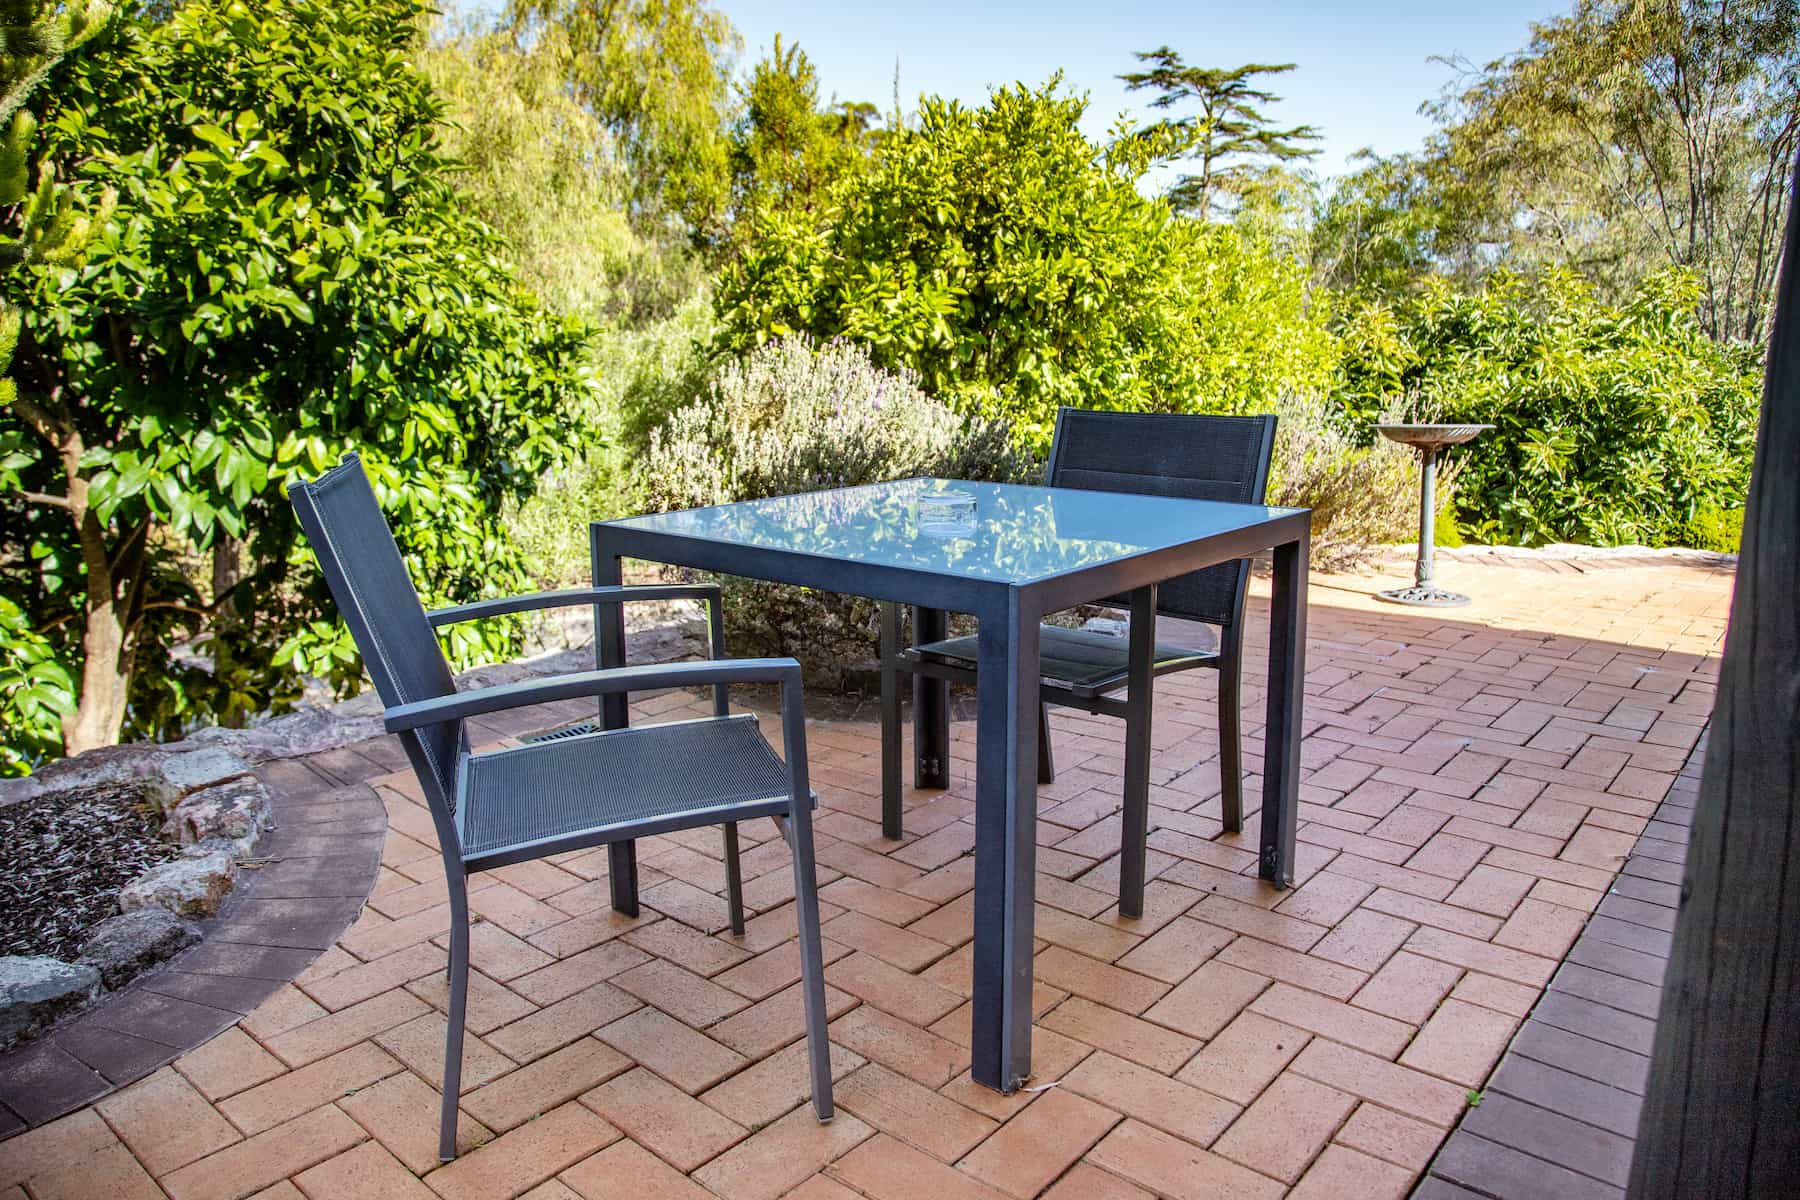 Gampi's outdoor seating area with bird bath